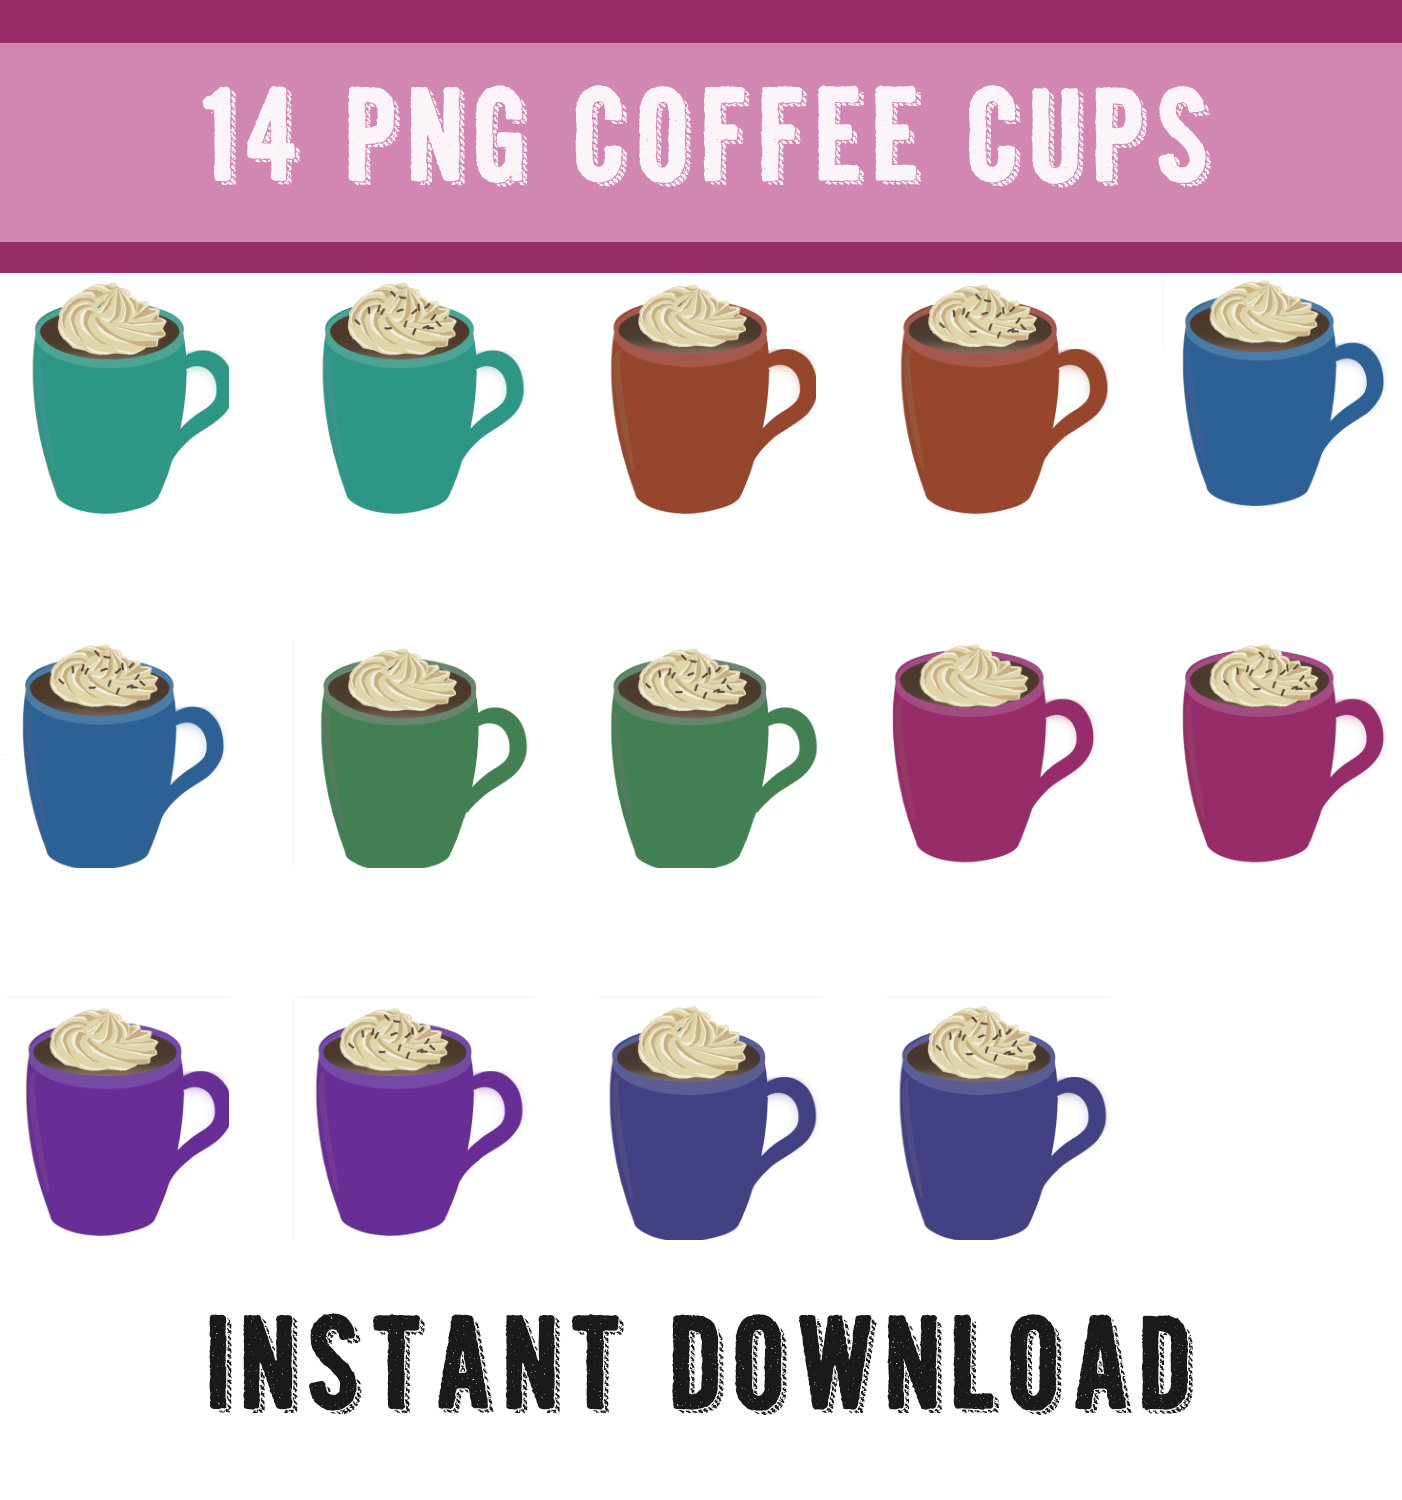 14 Coffee Cups, Coffee Cup Clipart, Coffee Cups Clip art, Instant Download  Clip Art, Coffee Mug Clip Art, Mug Clipart, Coffee,Commercial Use.